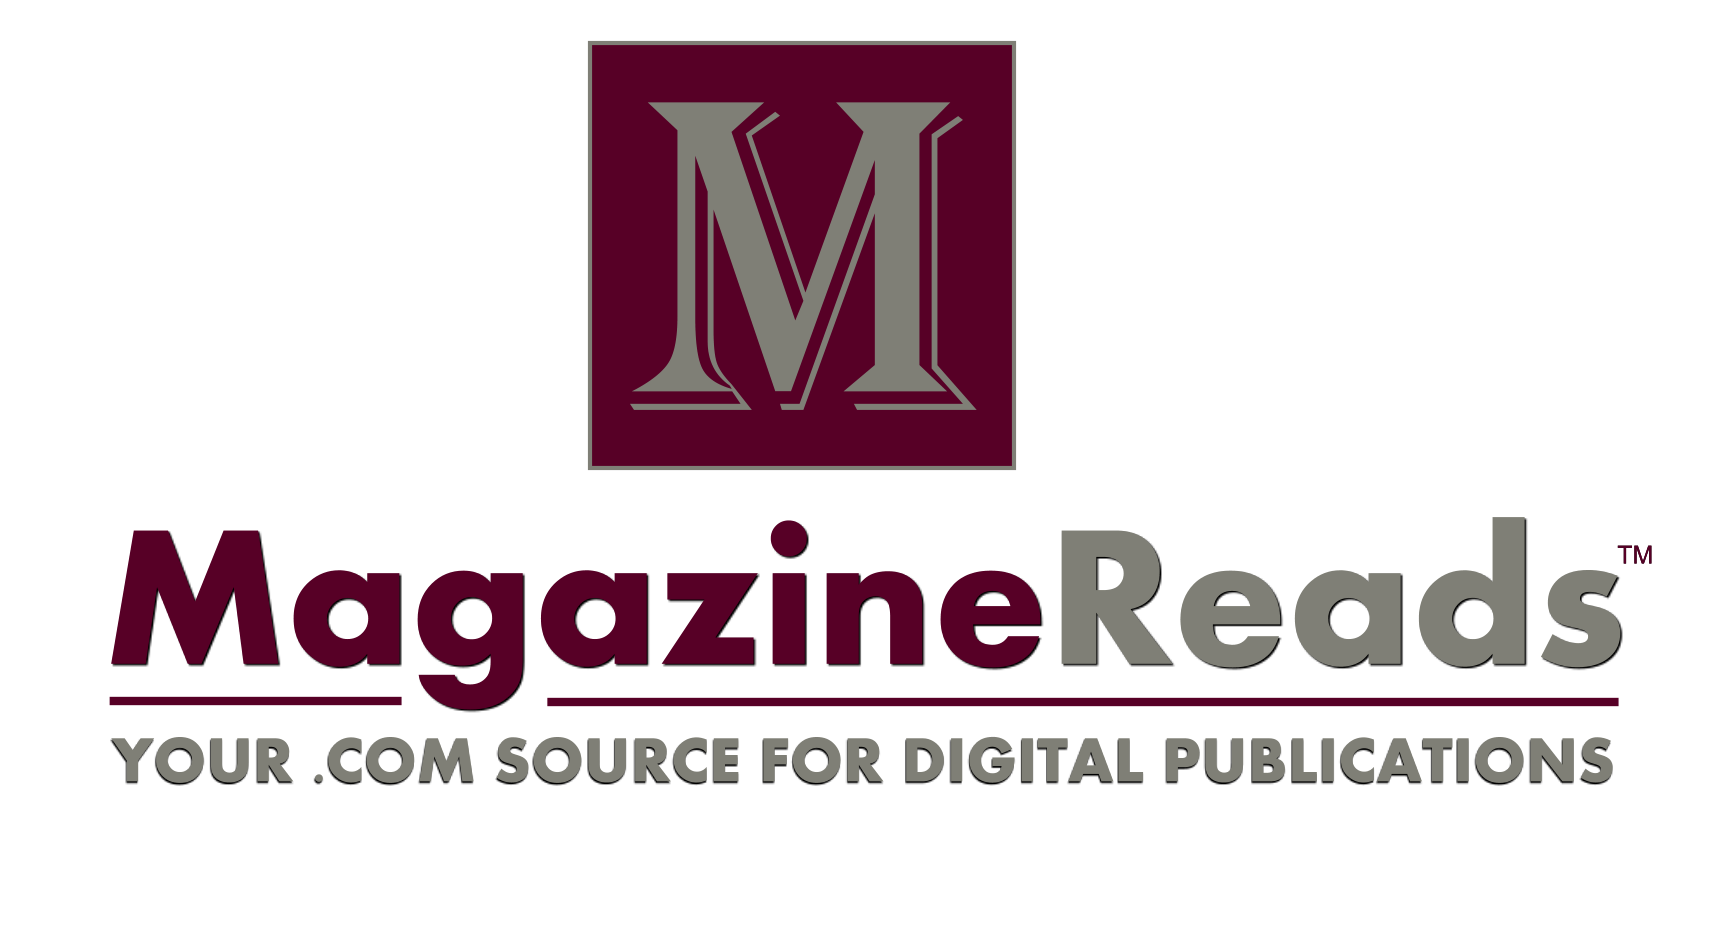 LOGO-MagazineReads